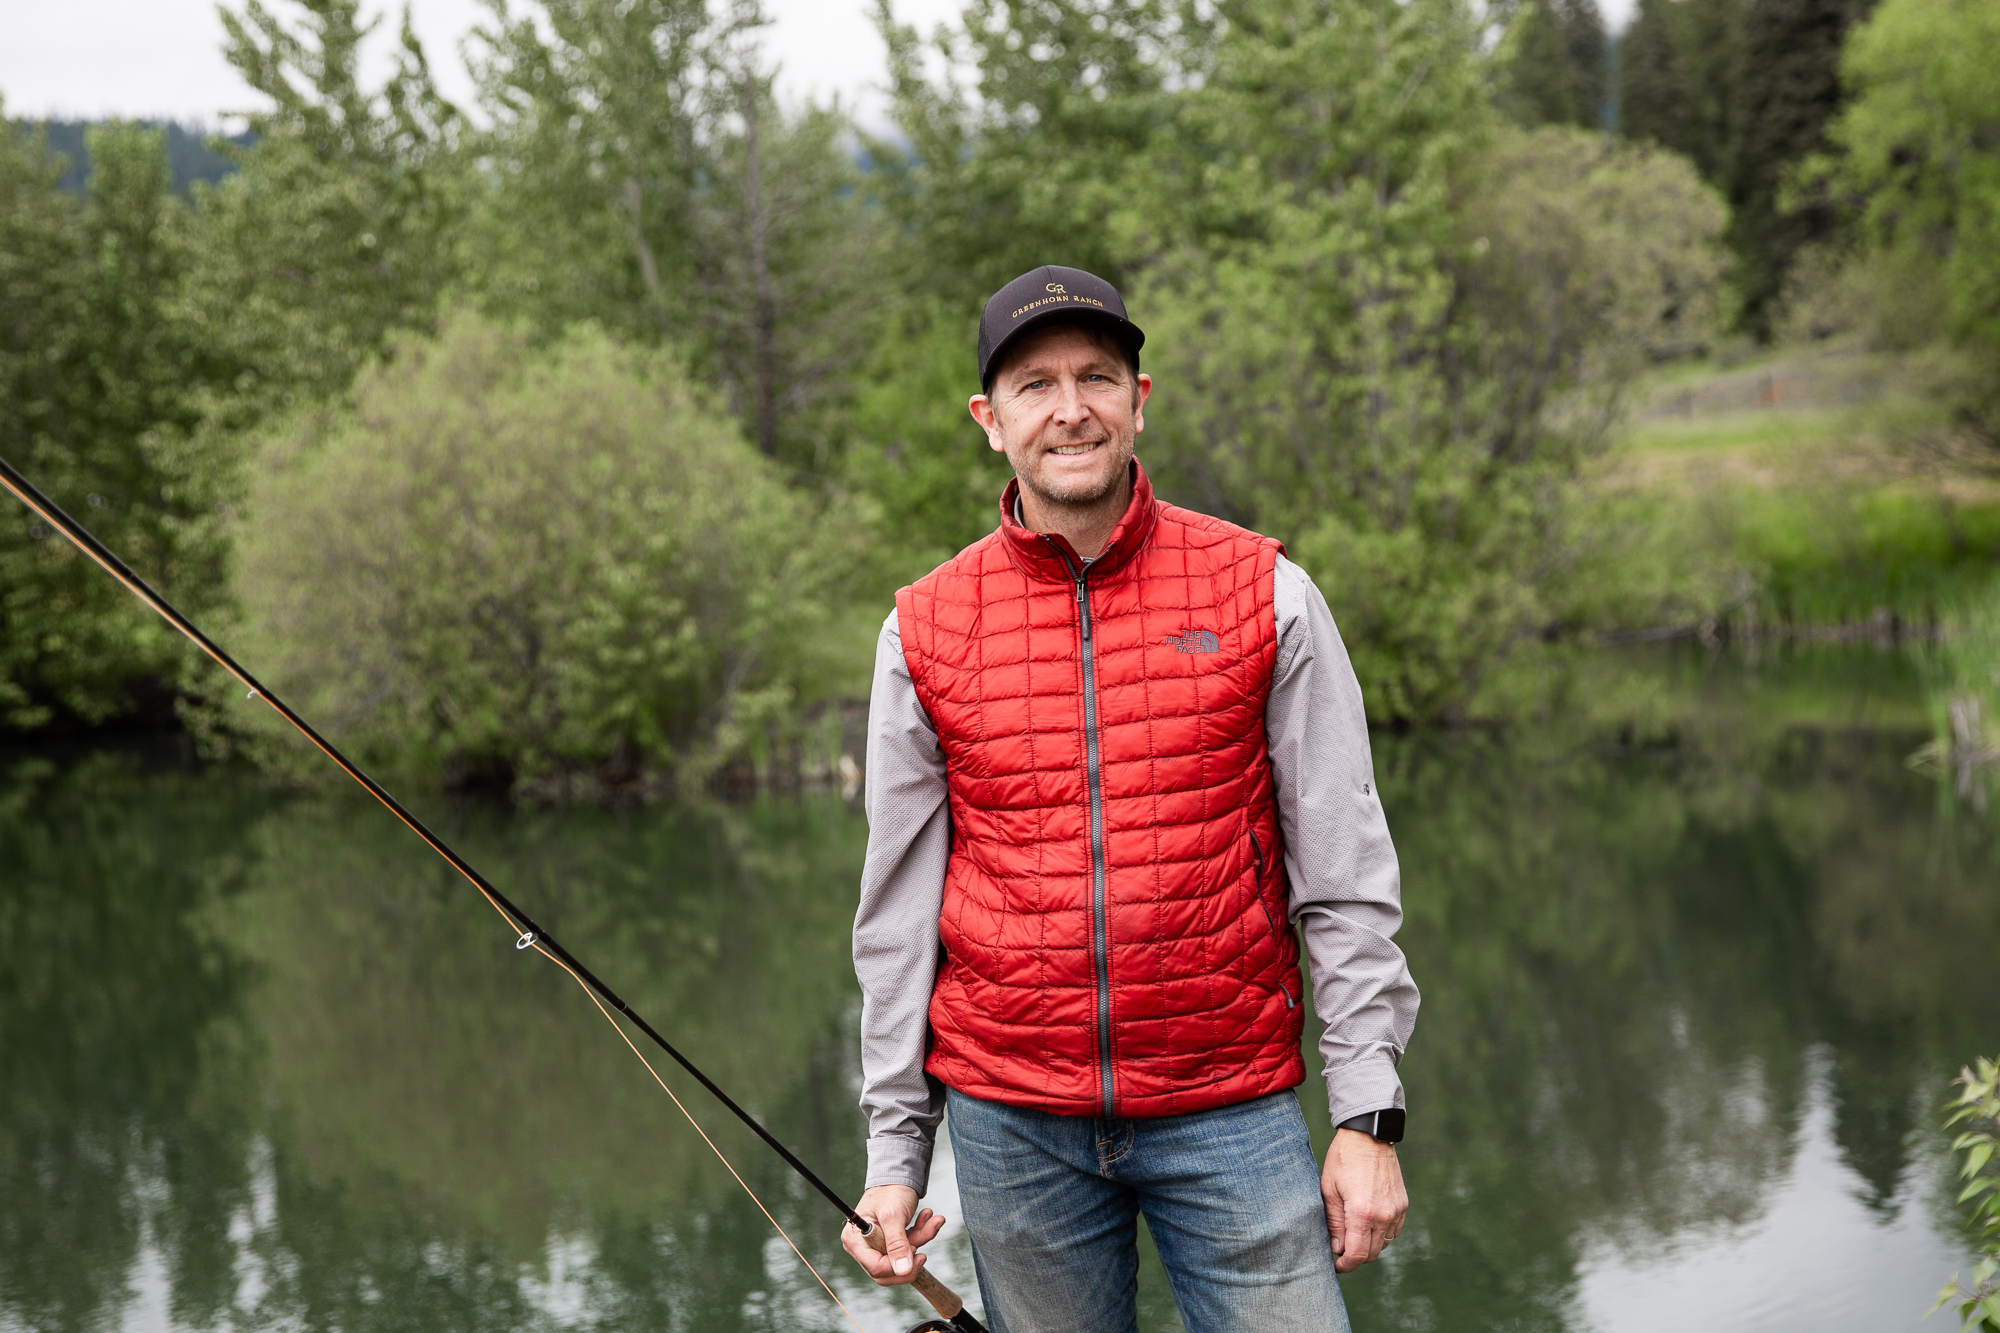 Certified Fly fishing Guide at Greenhorn Lodge